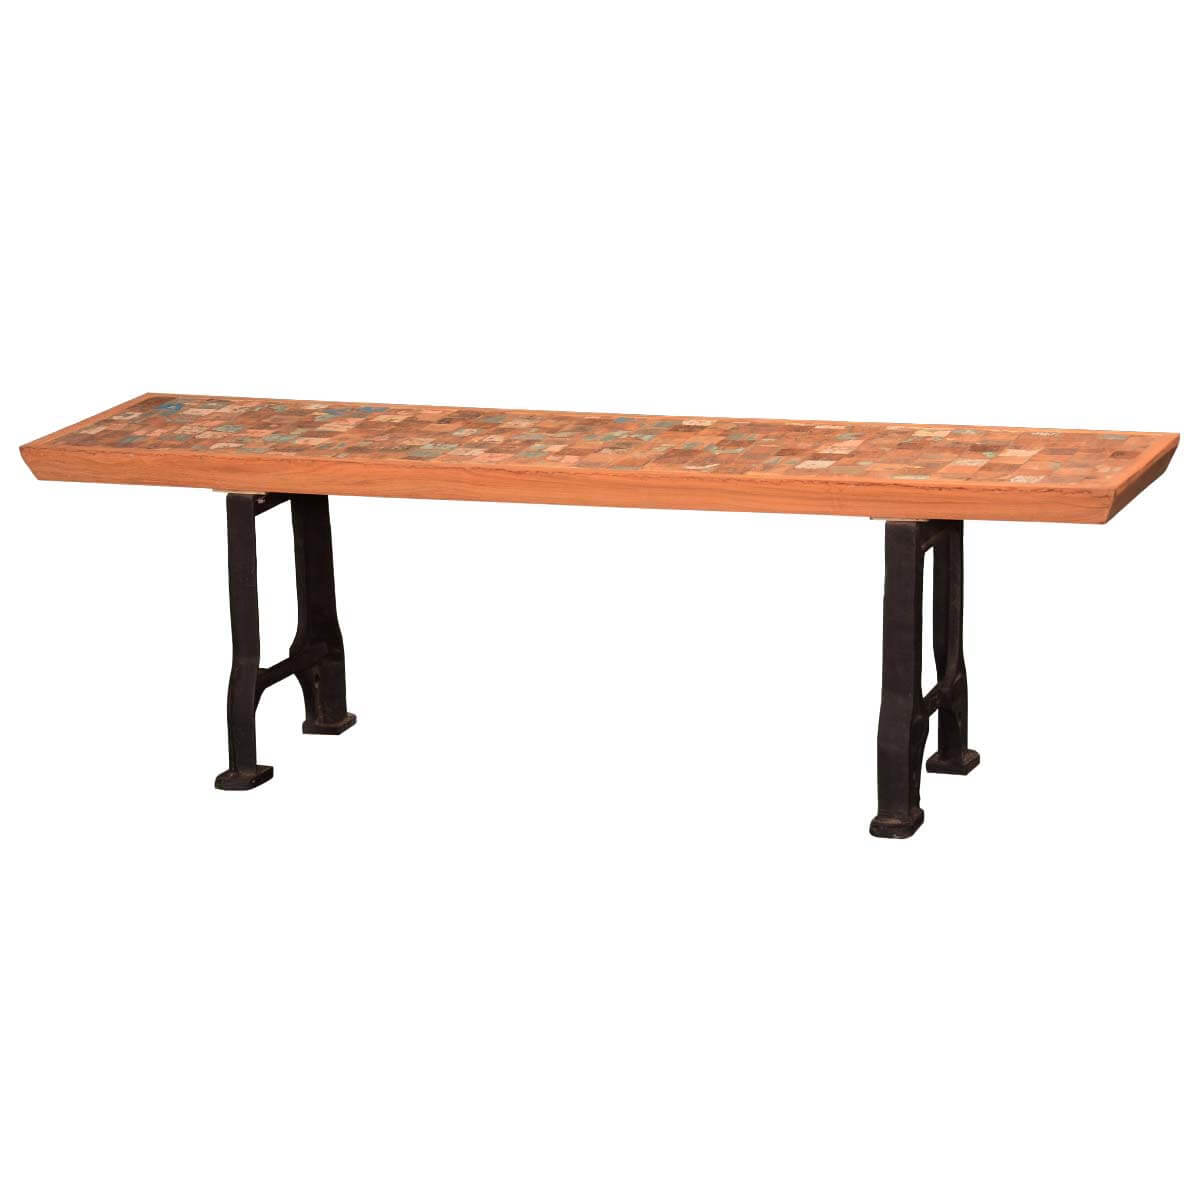 Marvelous photograph of Wooden Plaid Reclaimed Wood & Iron Saw Horse Table Bench with #B28C19 color and 1200x1200 pixels